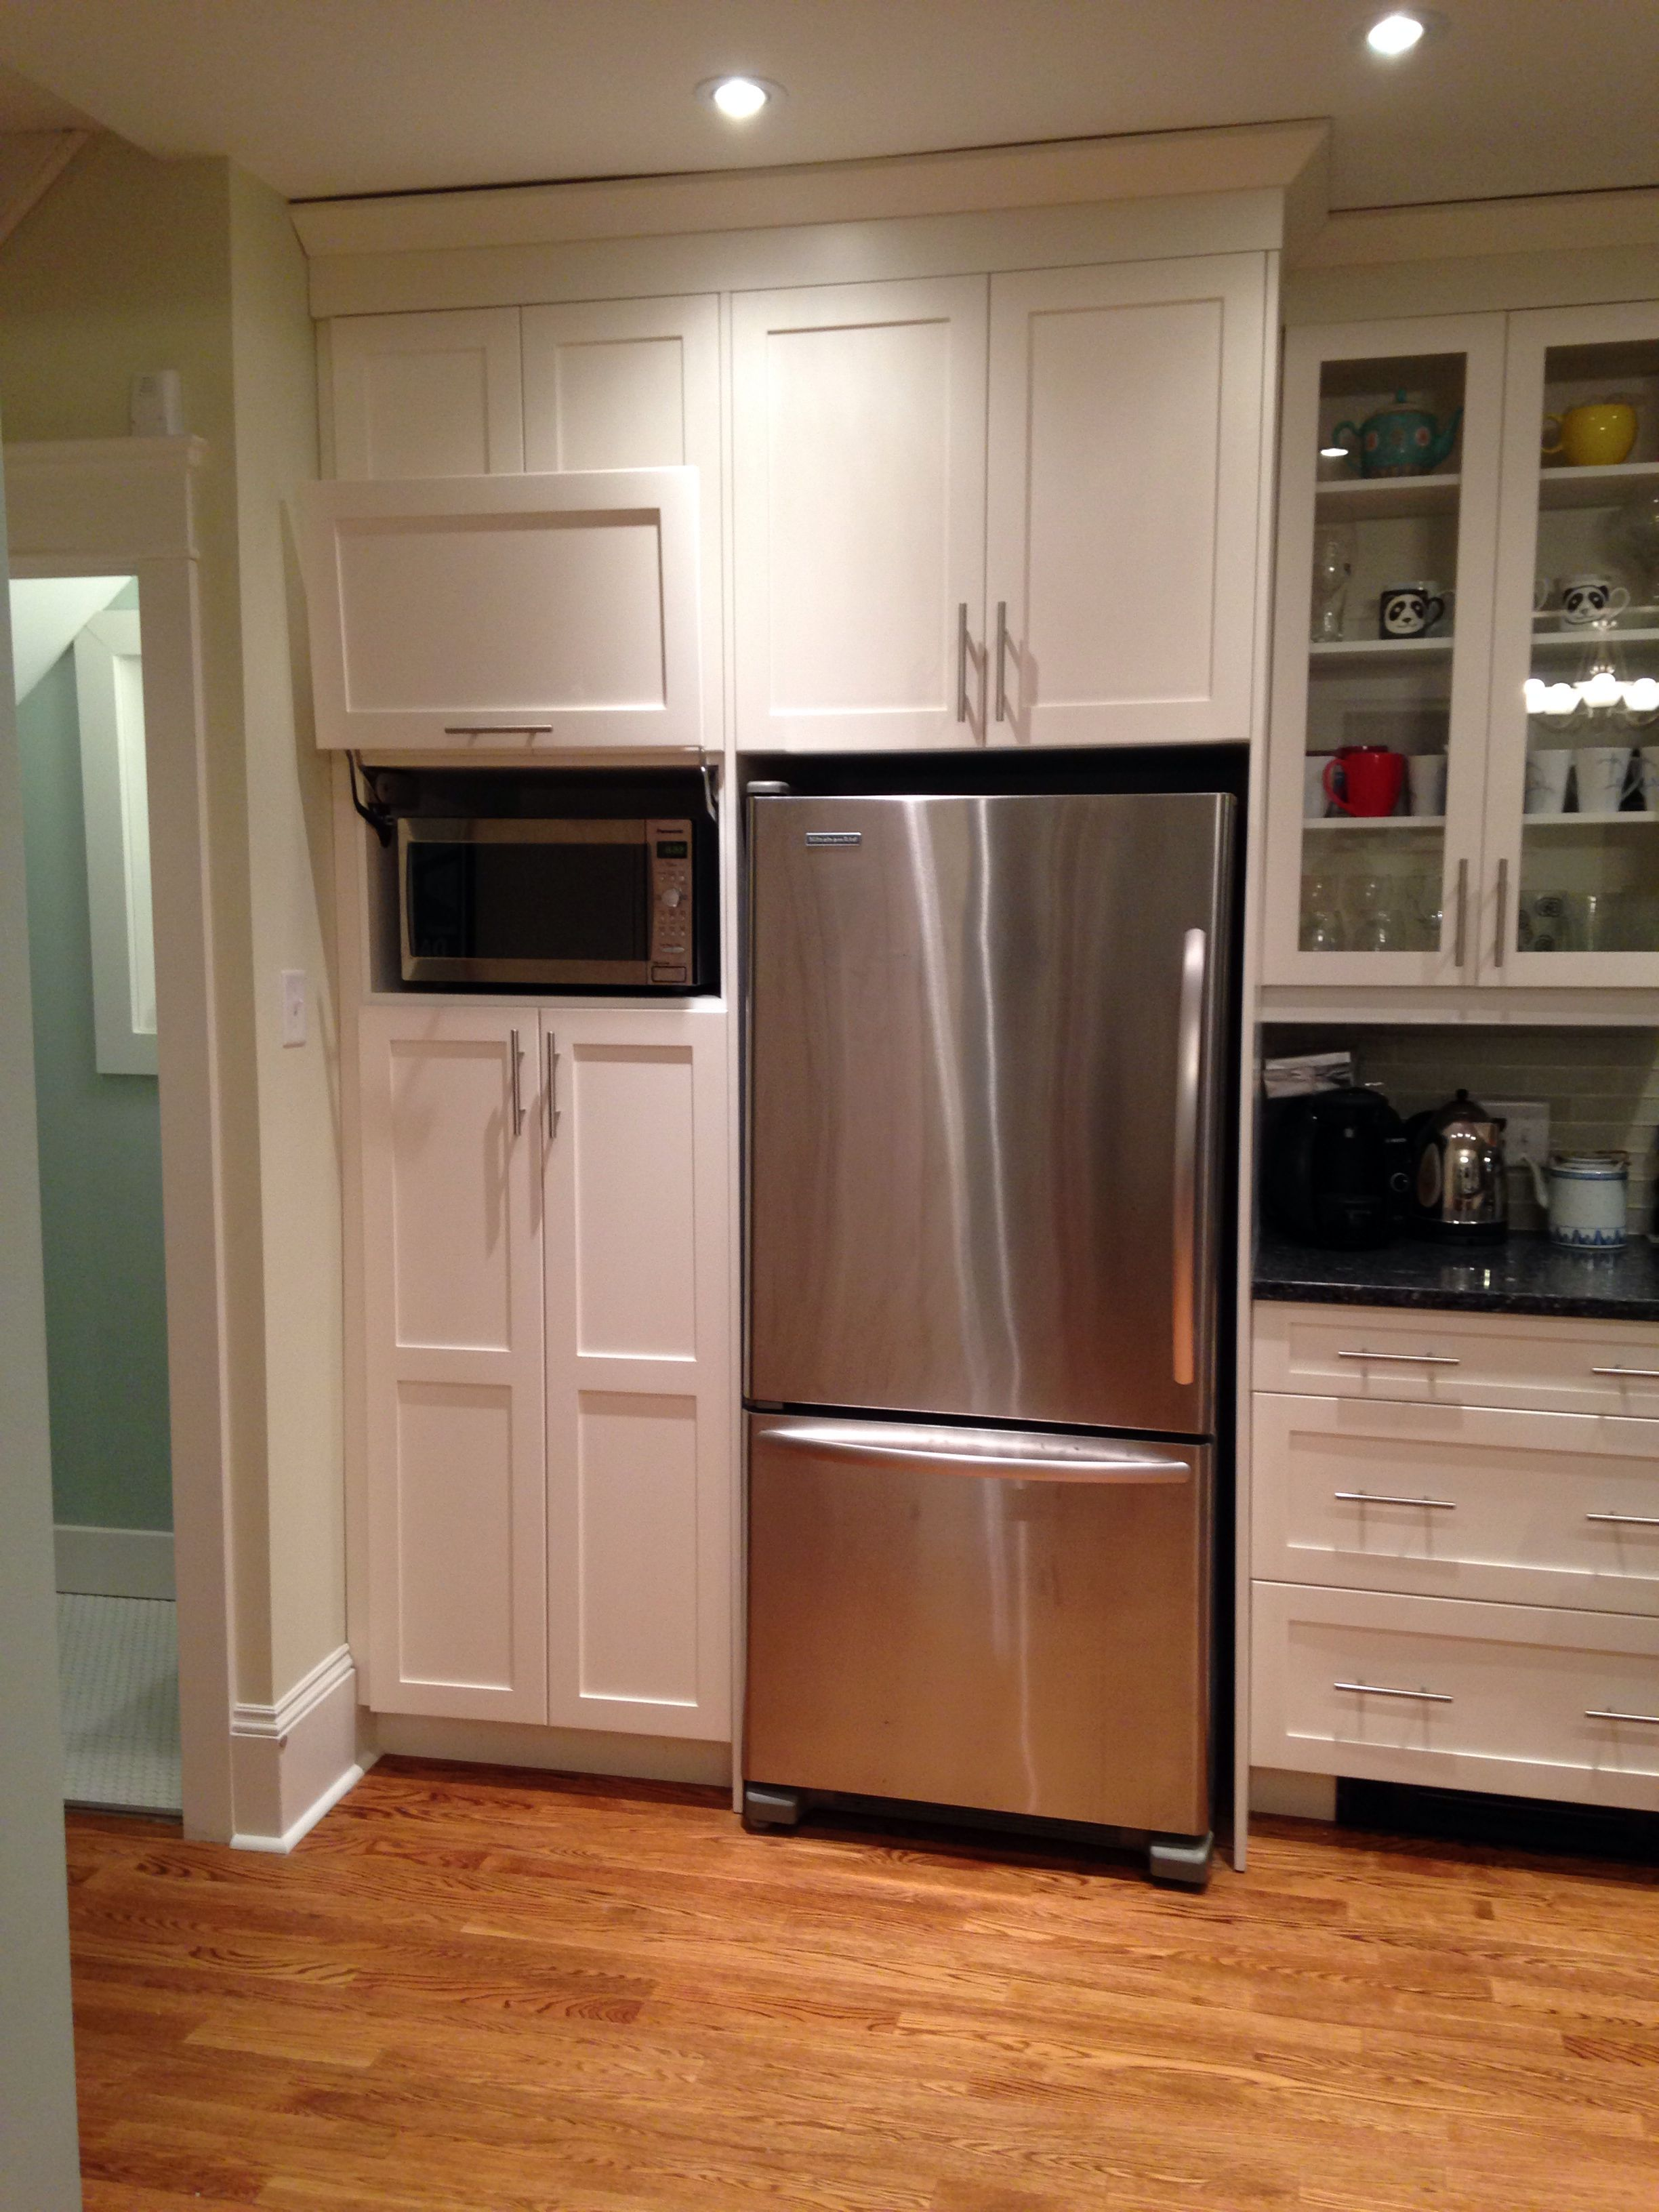 My New Kitchen, Finished Product. Hidden Microwave Cabinet